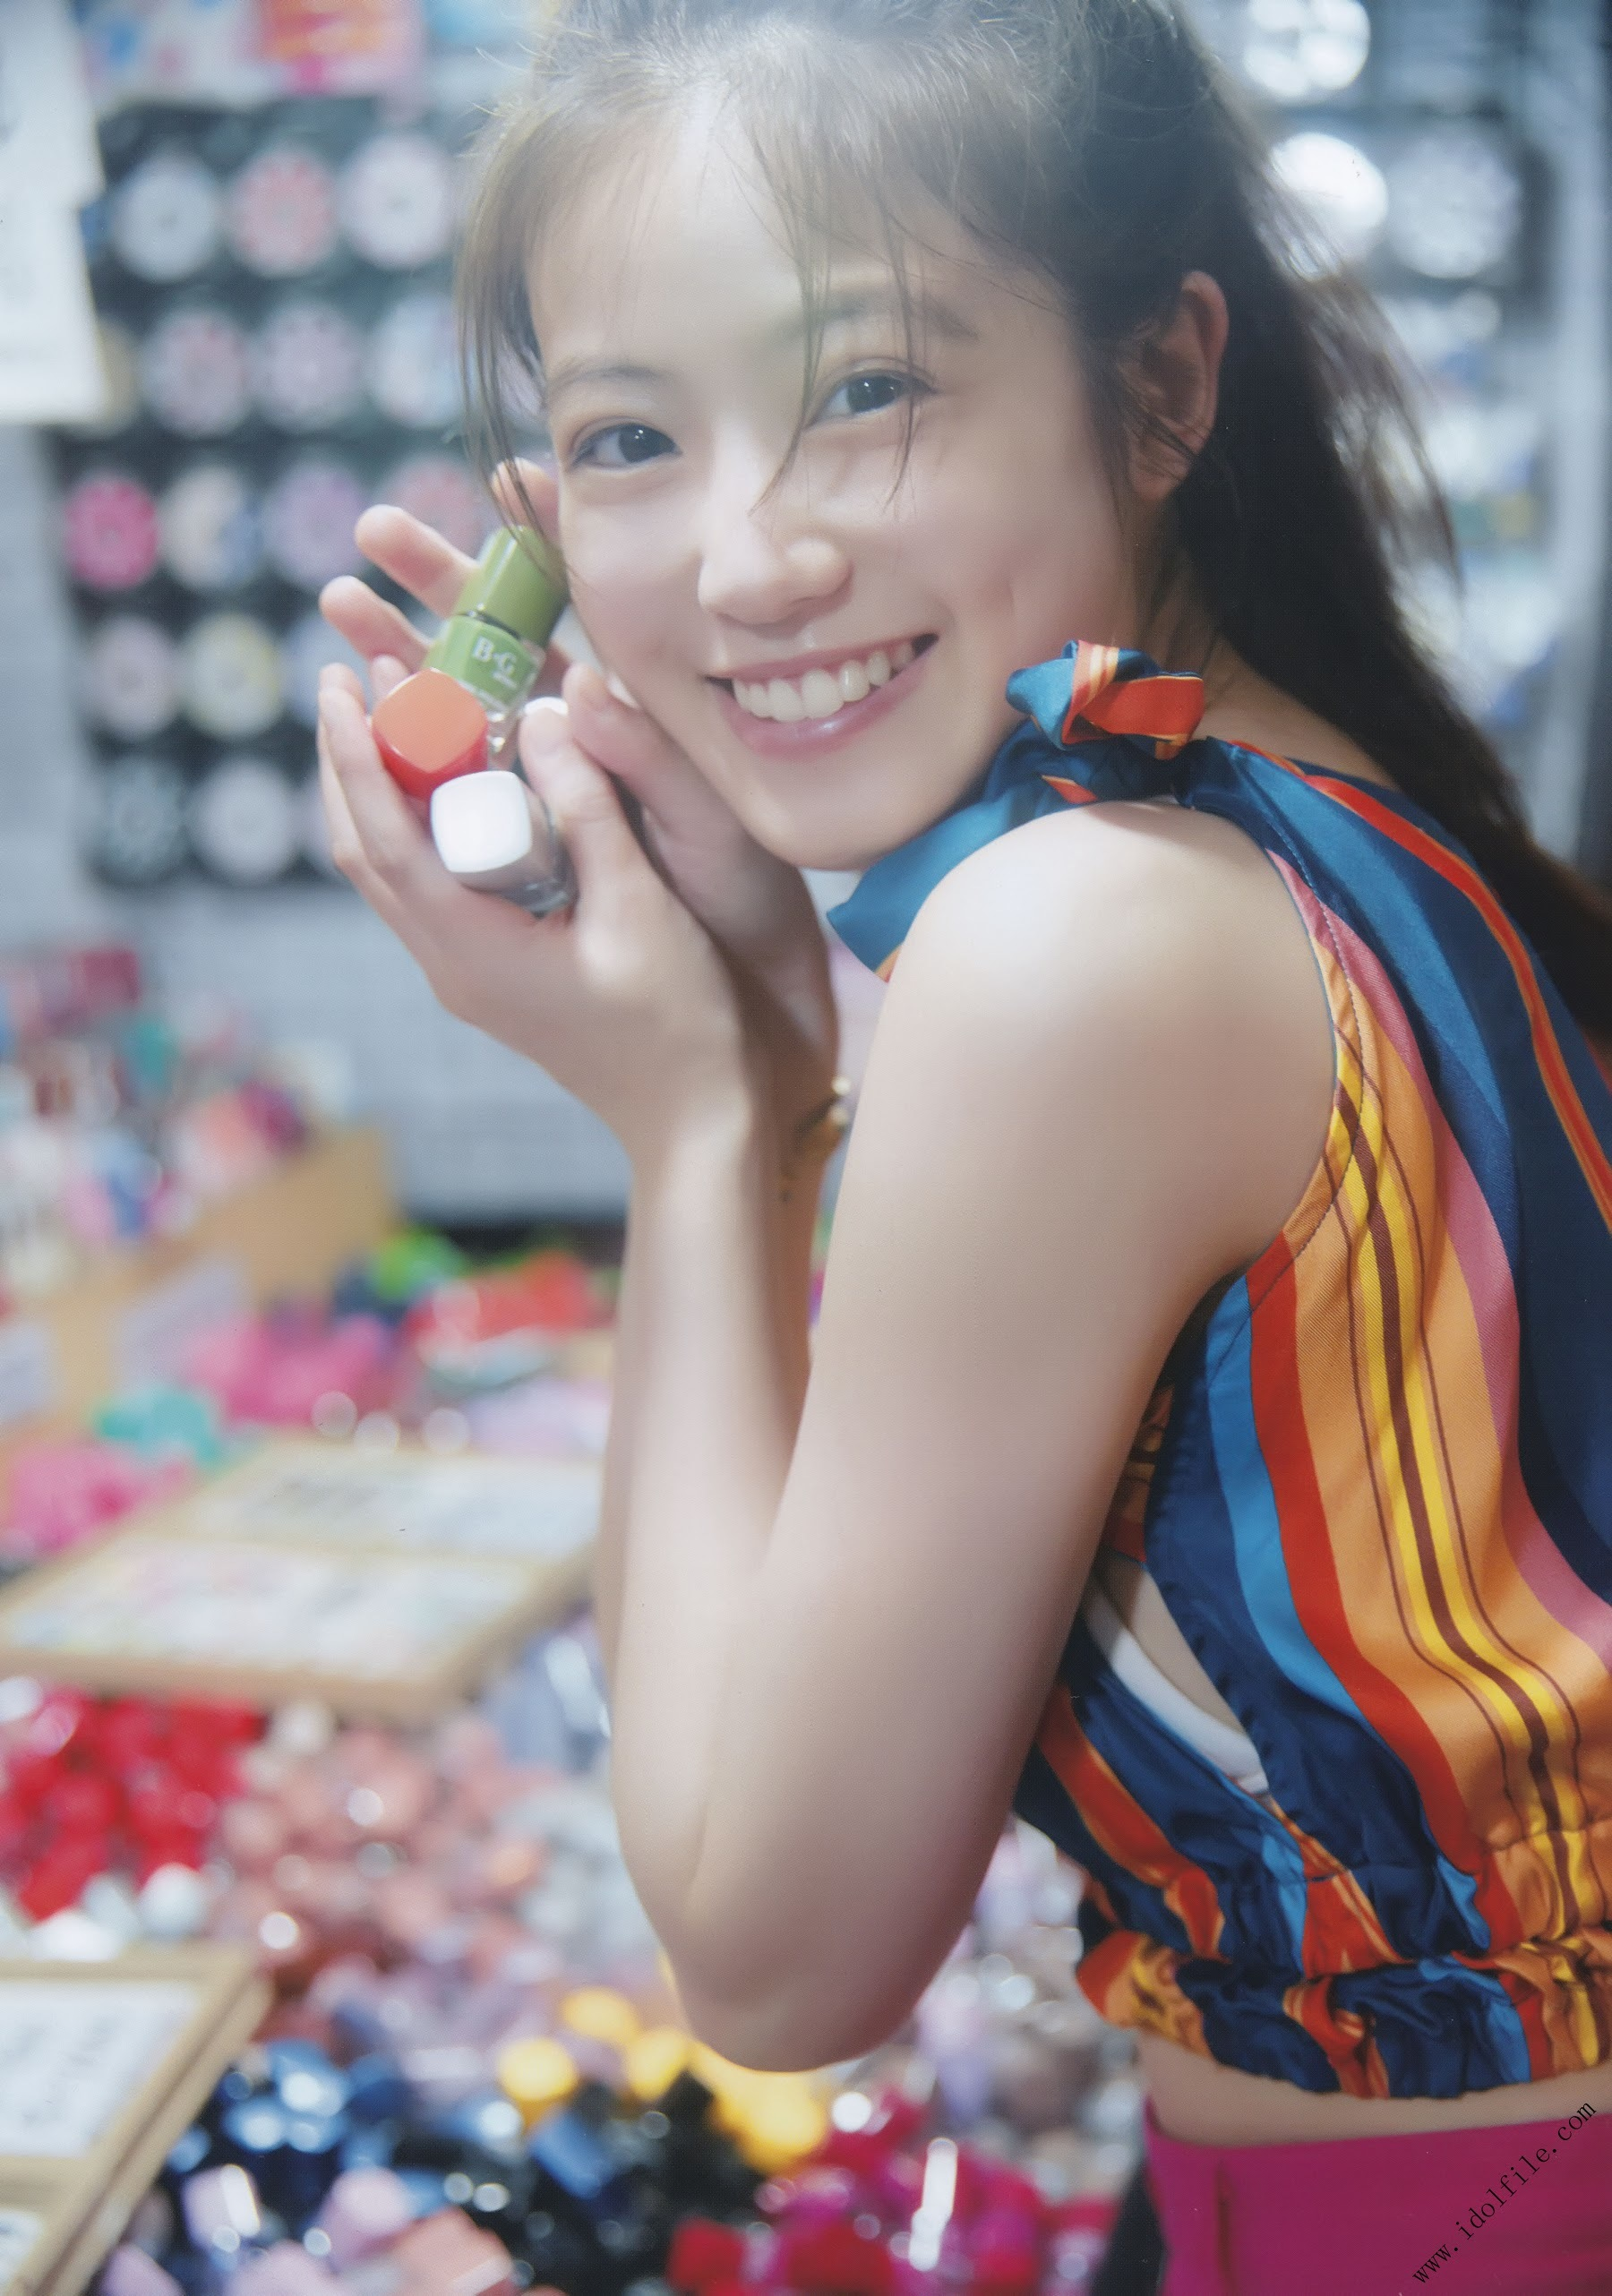 Pretty and beautiful, 22 years old and innocent Moving to the next stage as an actress Mio Imada128